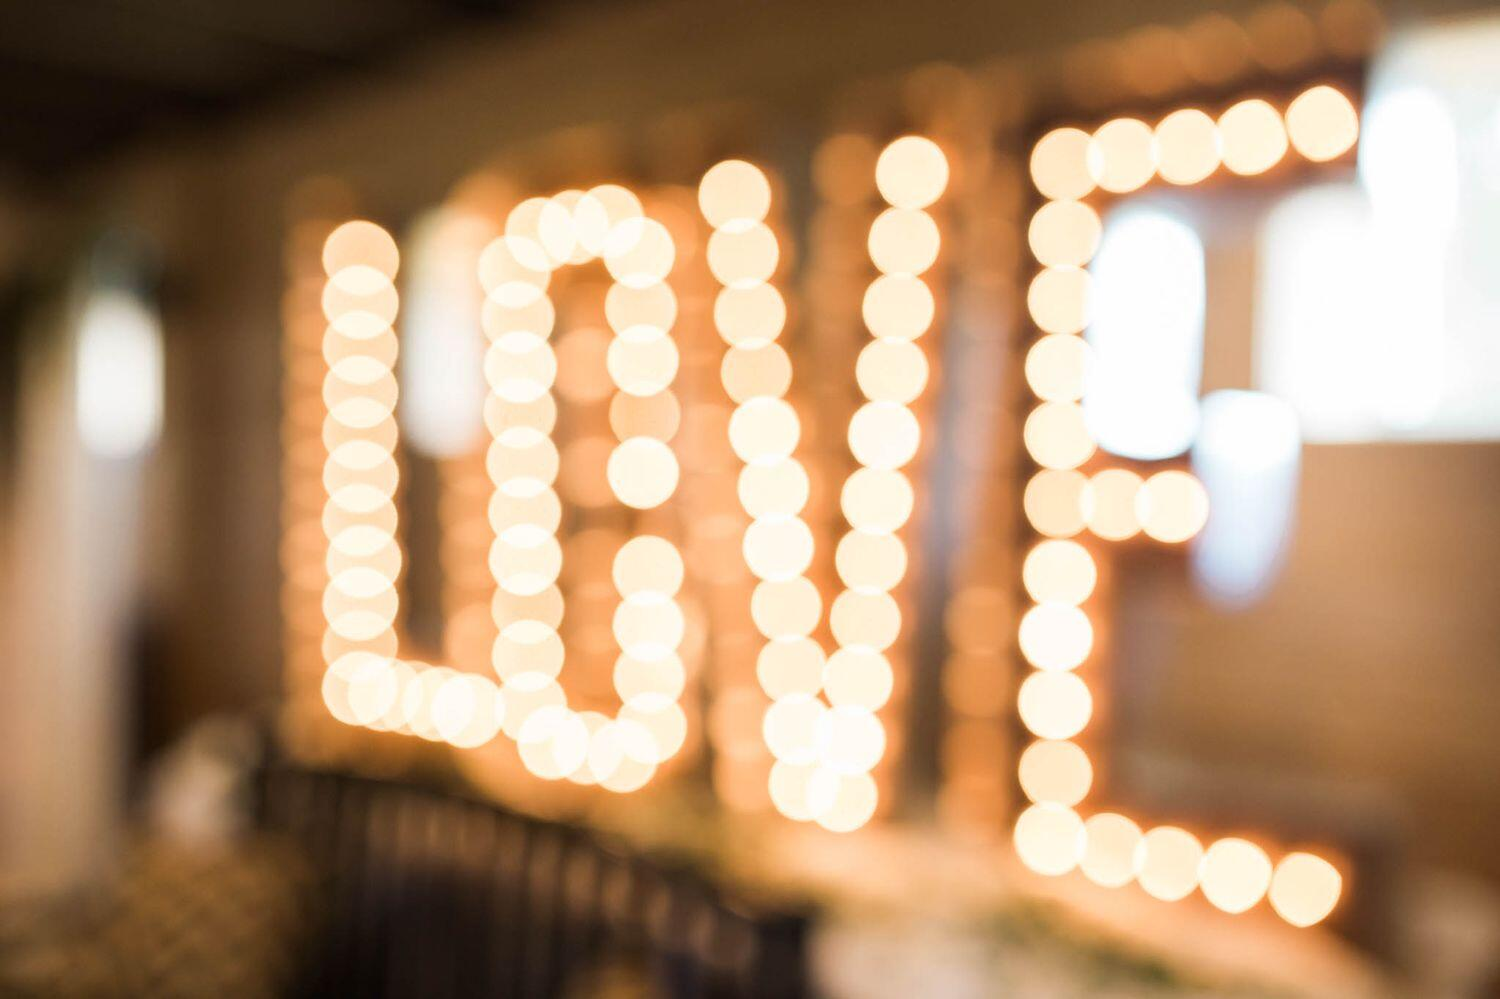 LED Letter Lights displaying - LOVE - in bokeh